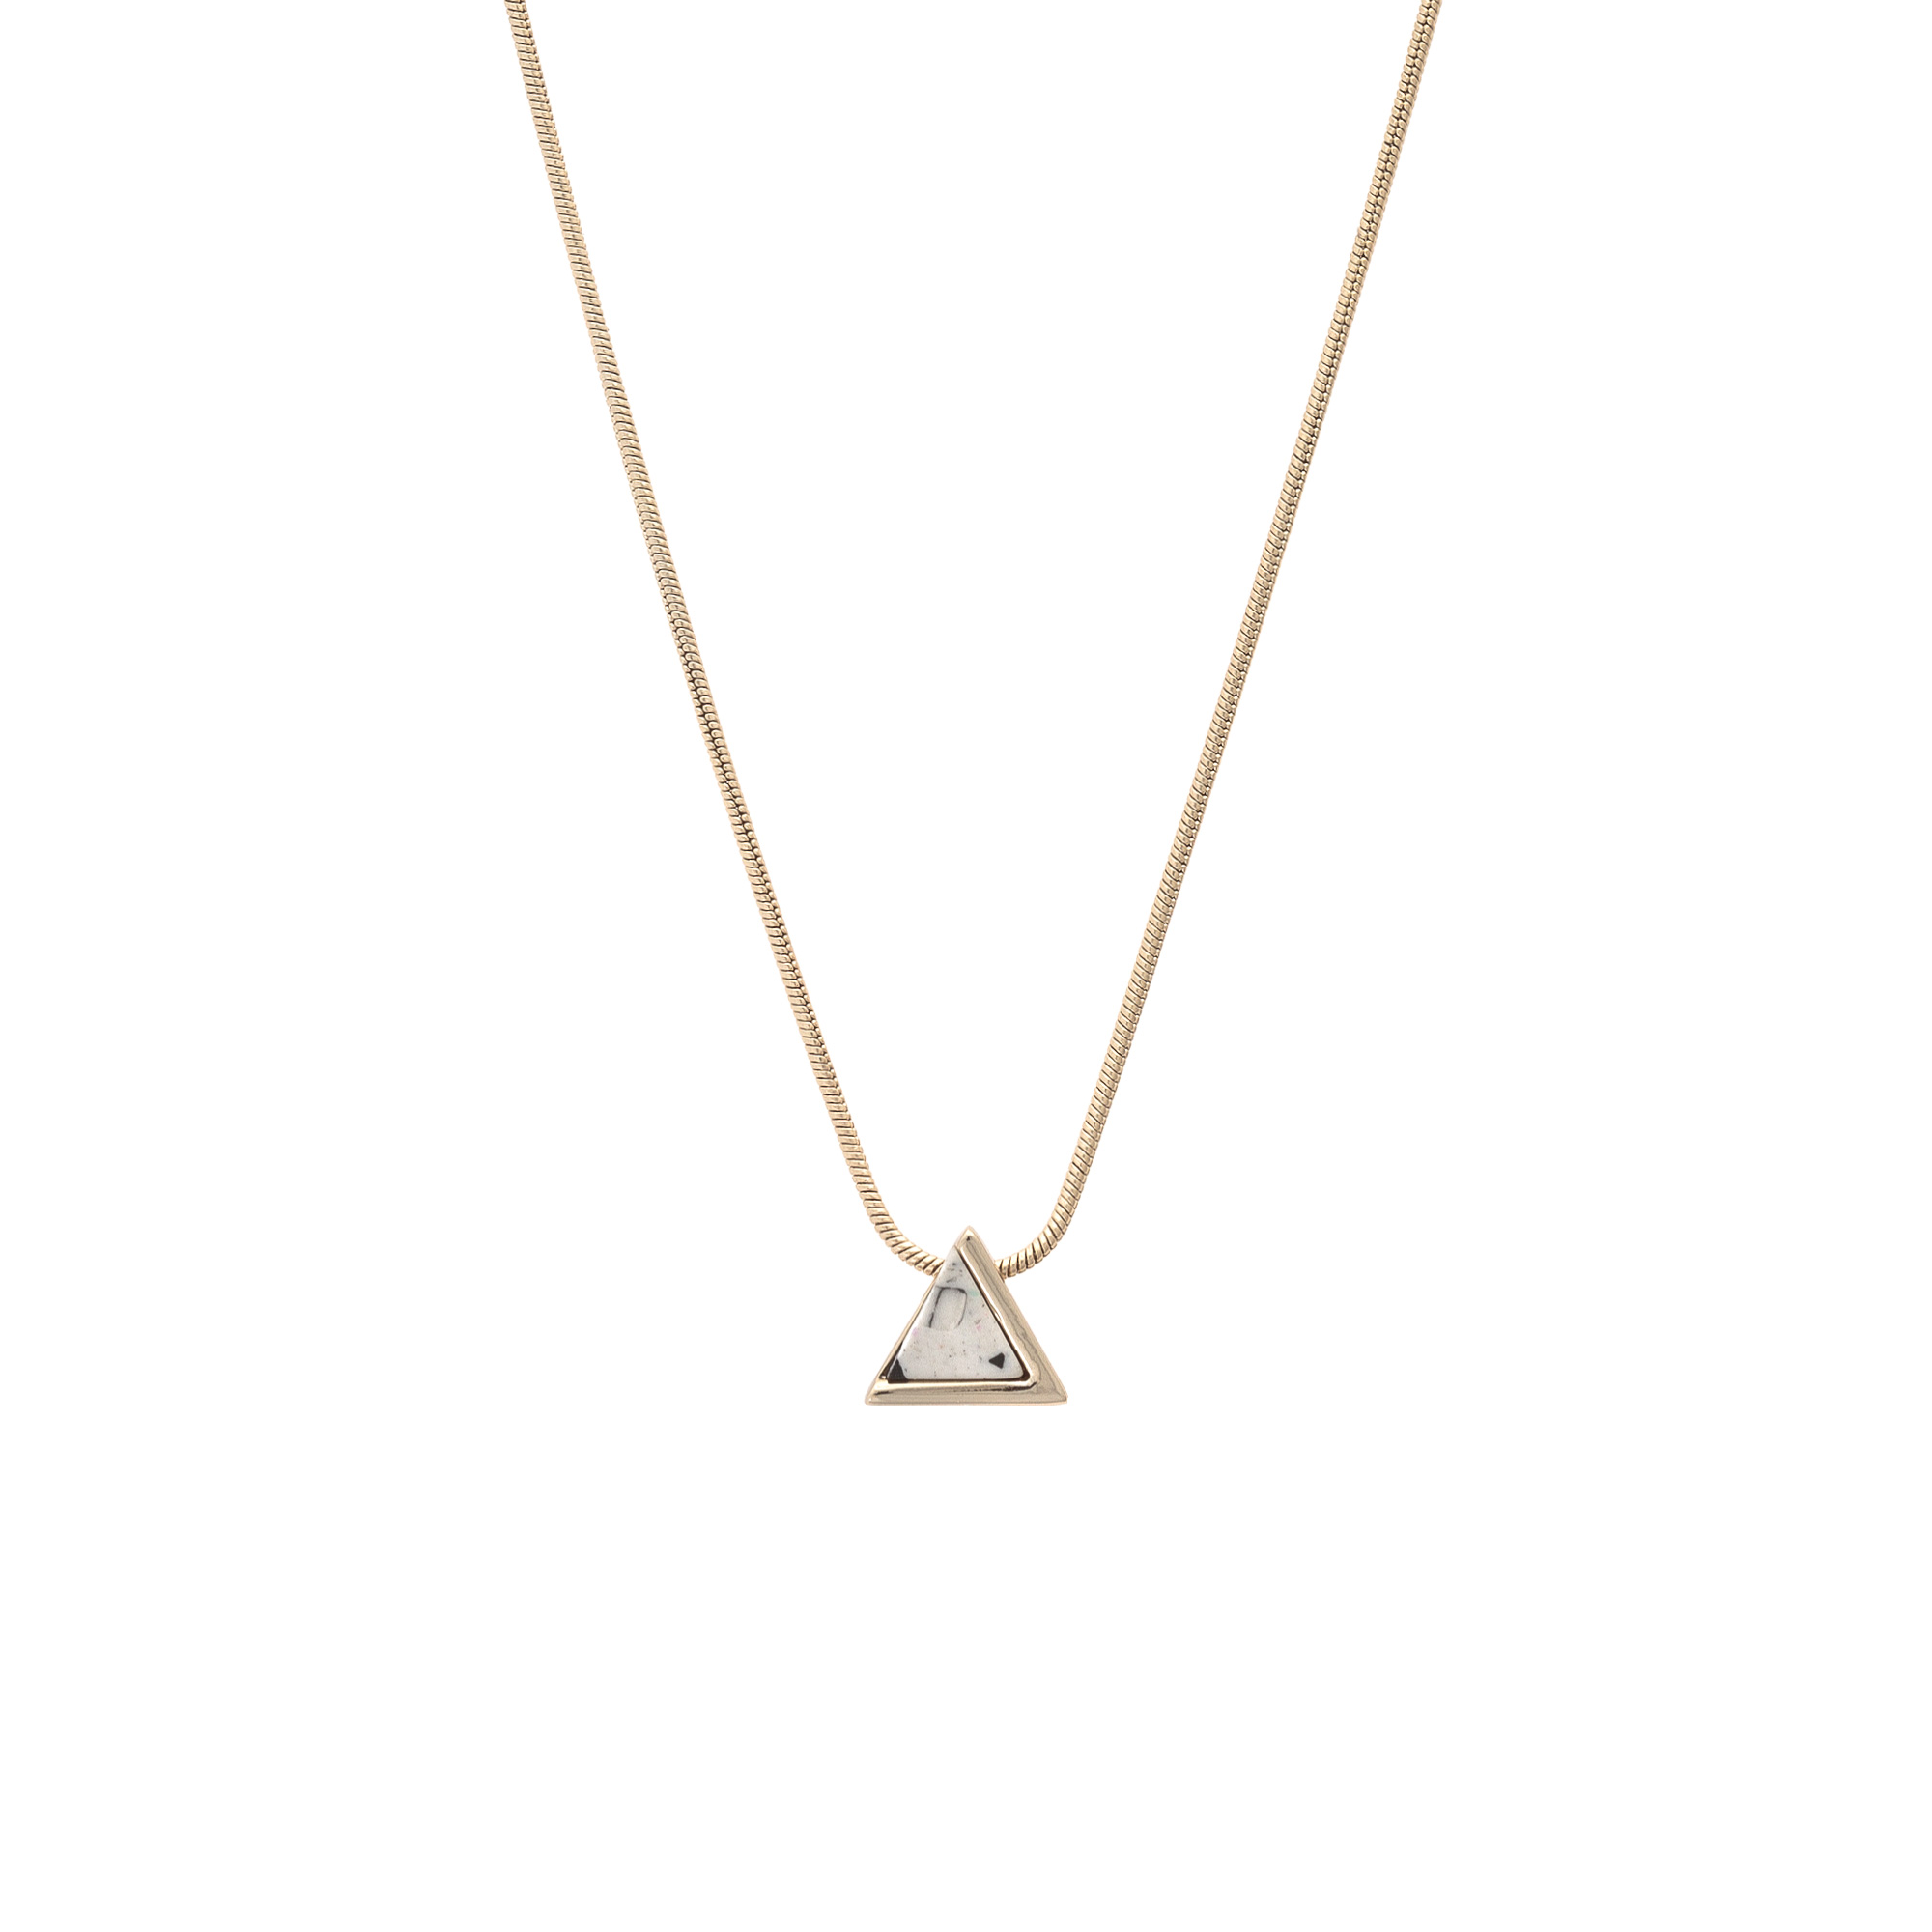 metal with steel horse strap hs necklace triangular products anju stainless n running pewter mixed etching gld reverie leather pendant en